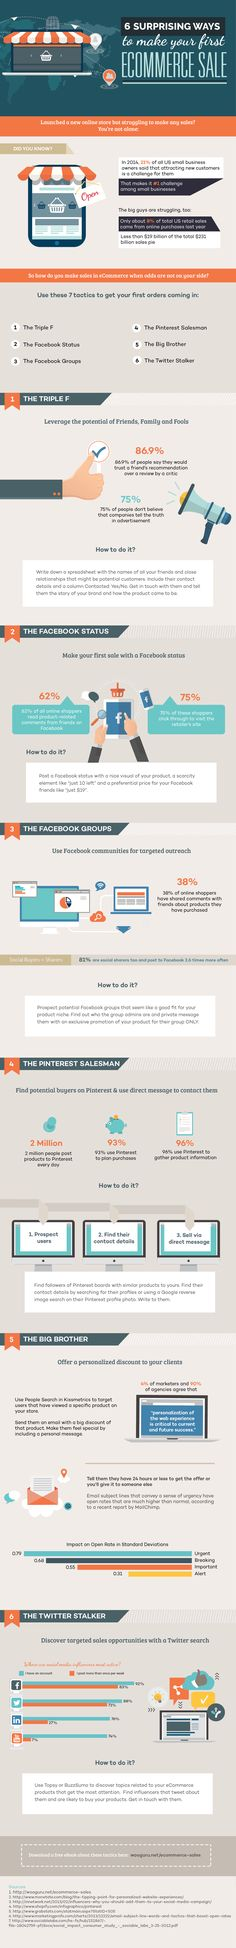 6 Surprising Ways to Make Your First Ecommerce Sale (Infographic)